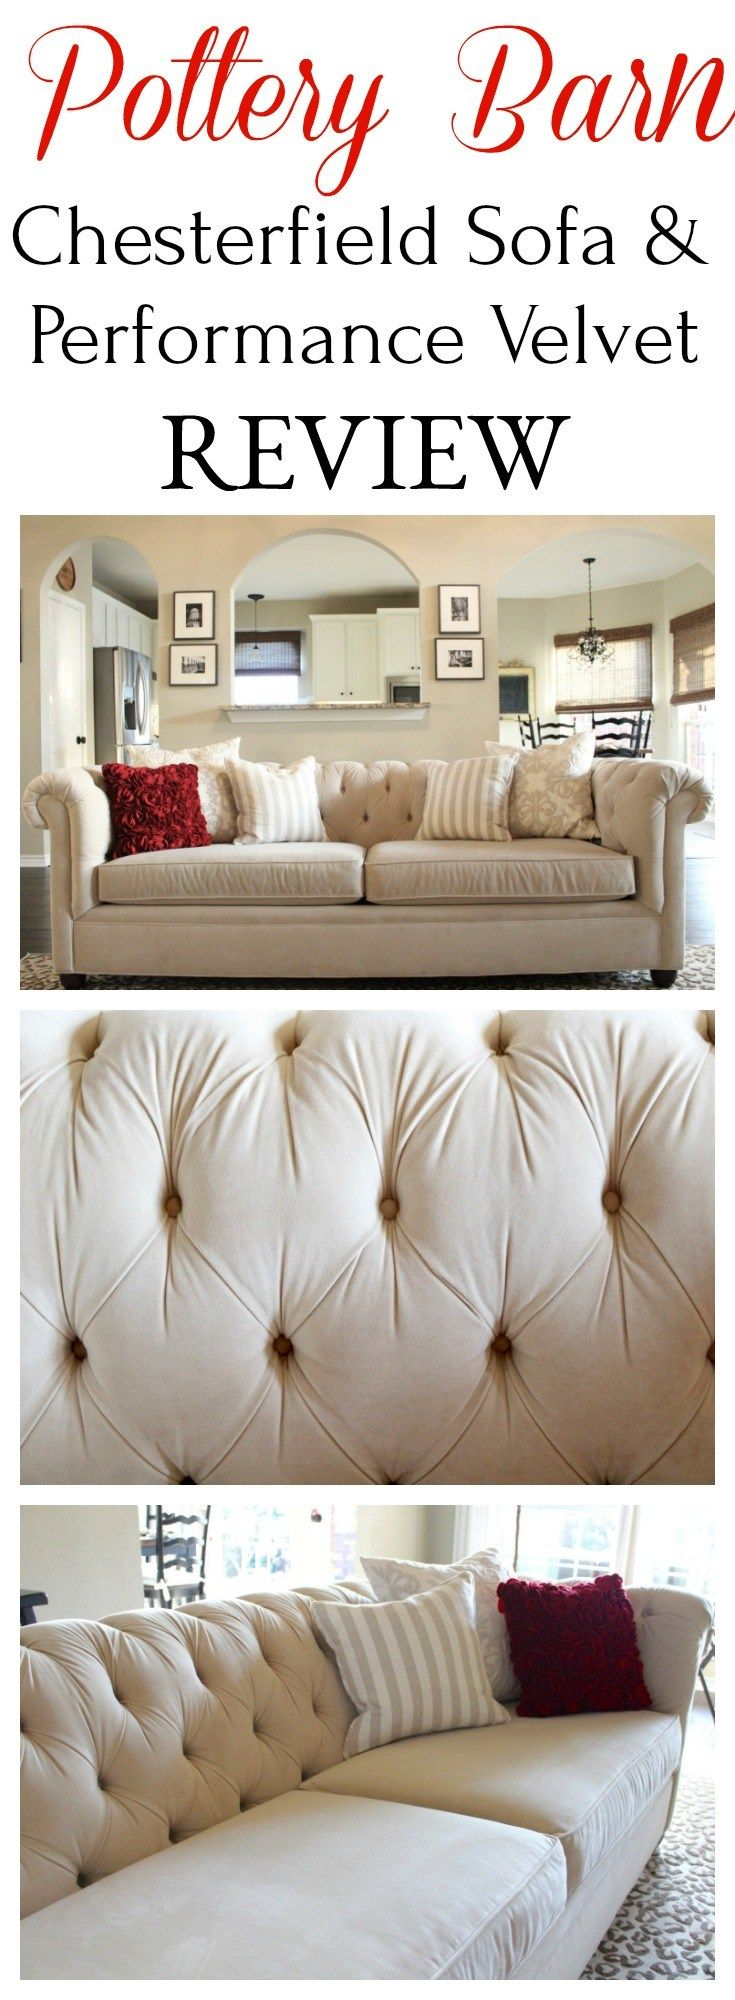 Review Pottery Barn Chesterfield Sofa